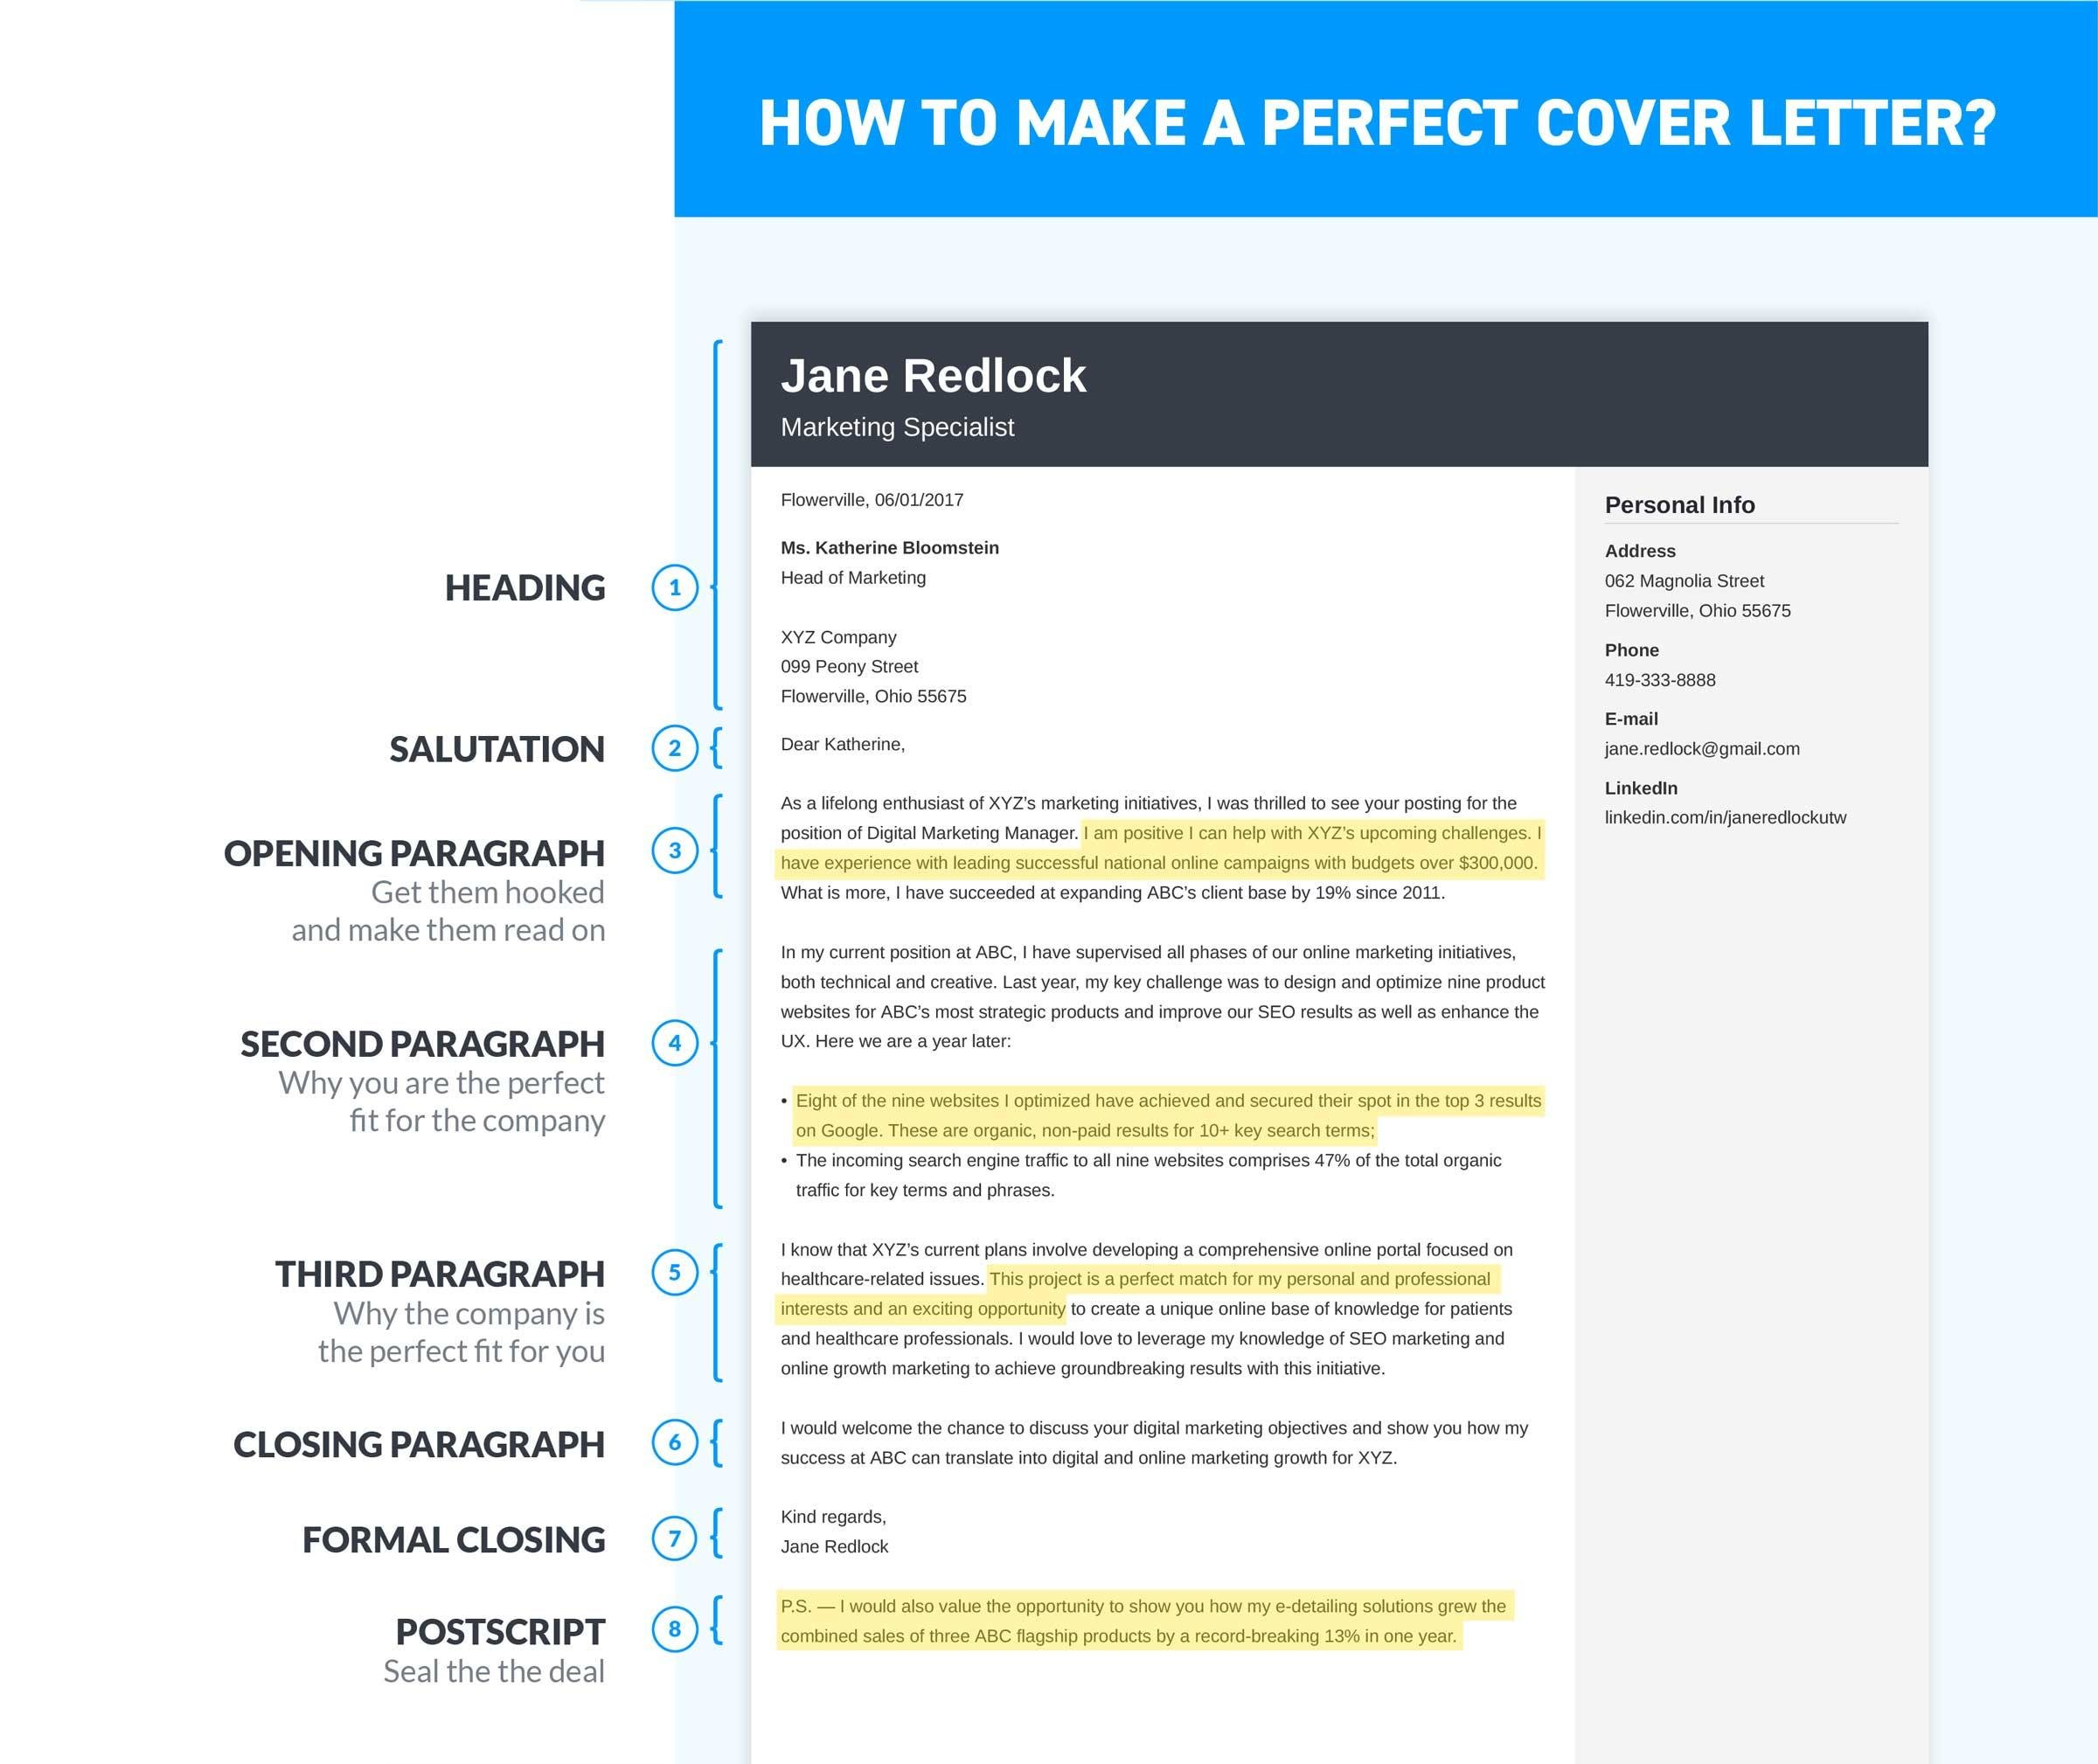 How to write a cover letter in 8 simple steps 12 examples how to make a perfect cover letter infographic madrichimfo Choice Image